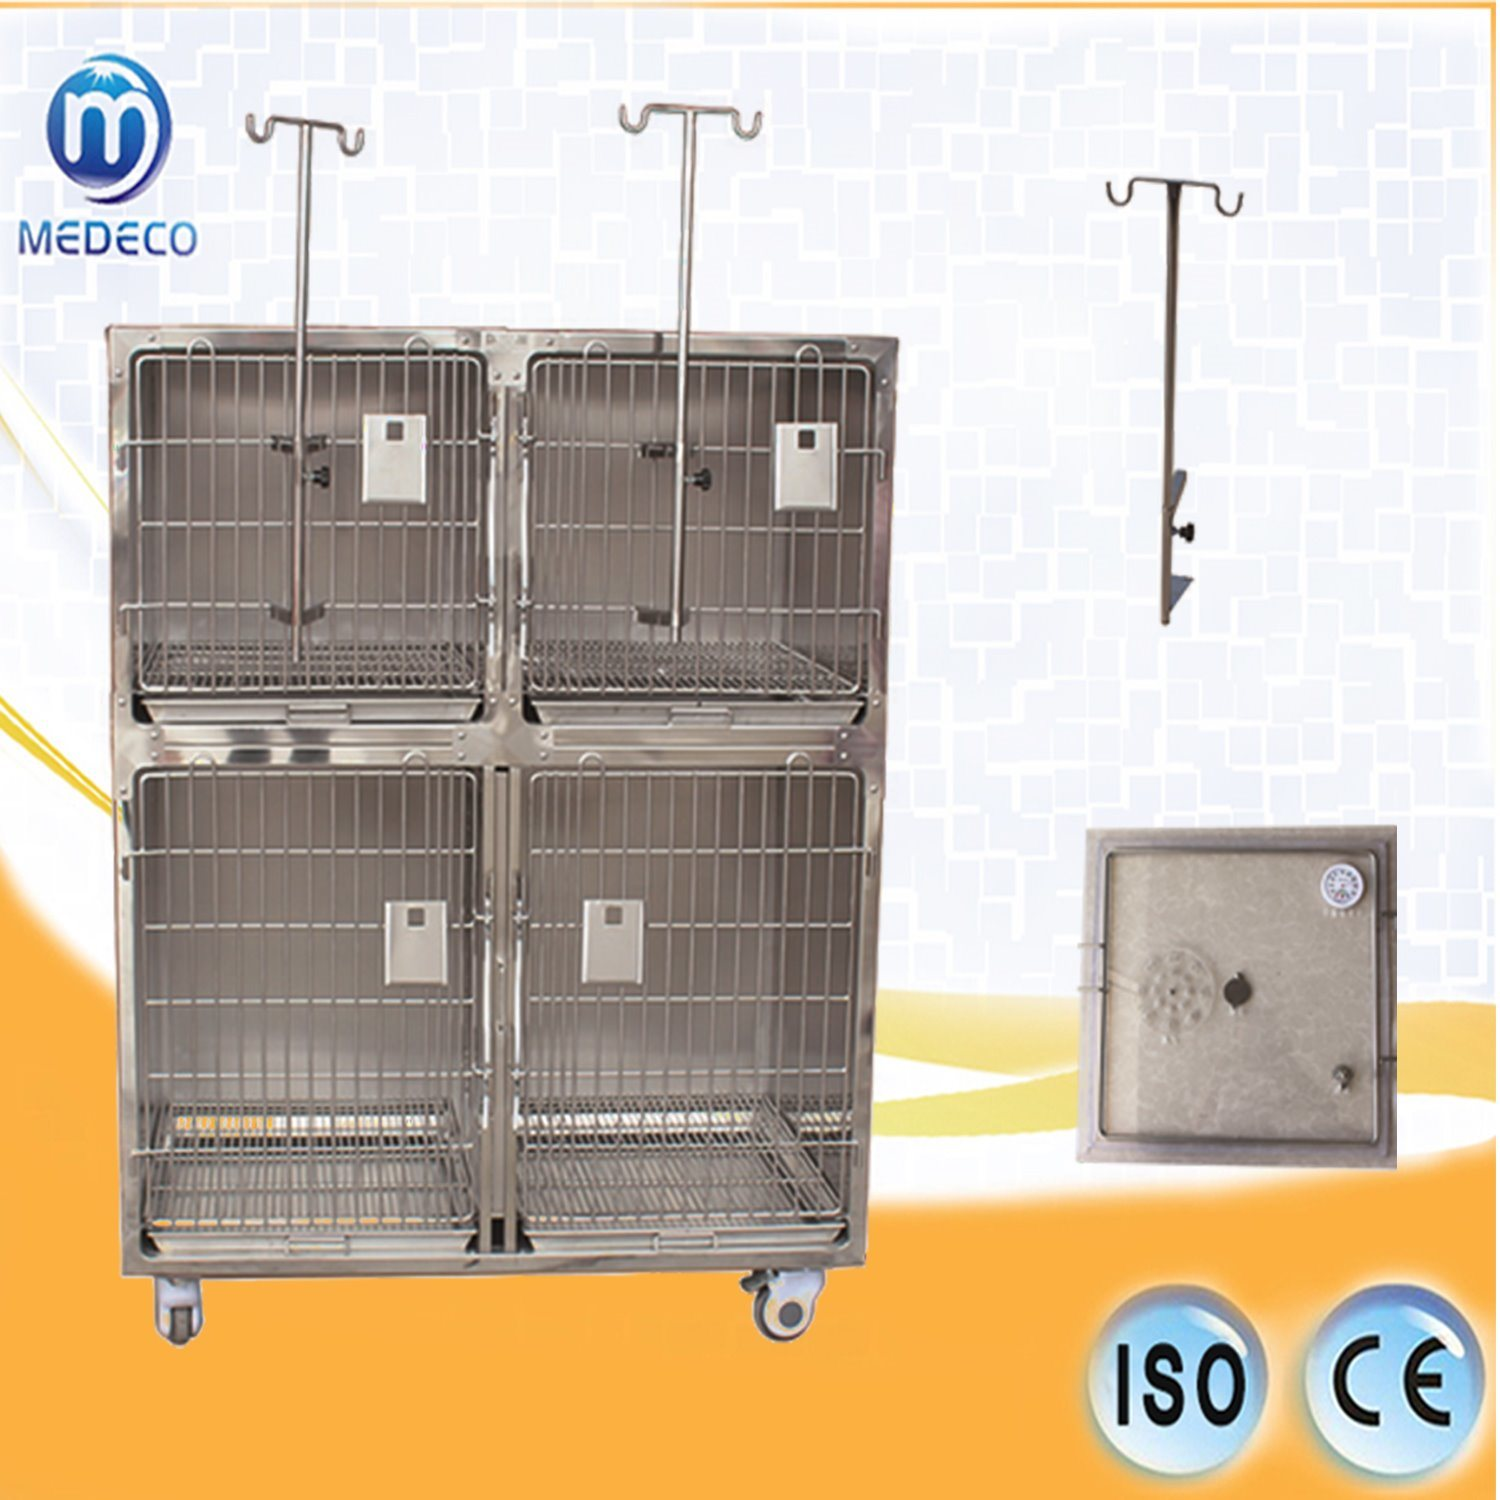 Economic Veterinary Equipment Combined Stainless Steel Cat & Dog Cage Mejy-01 pictures & photos